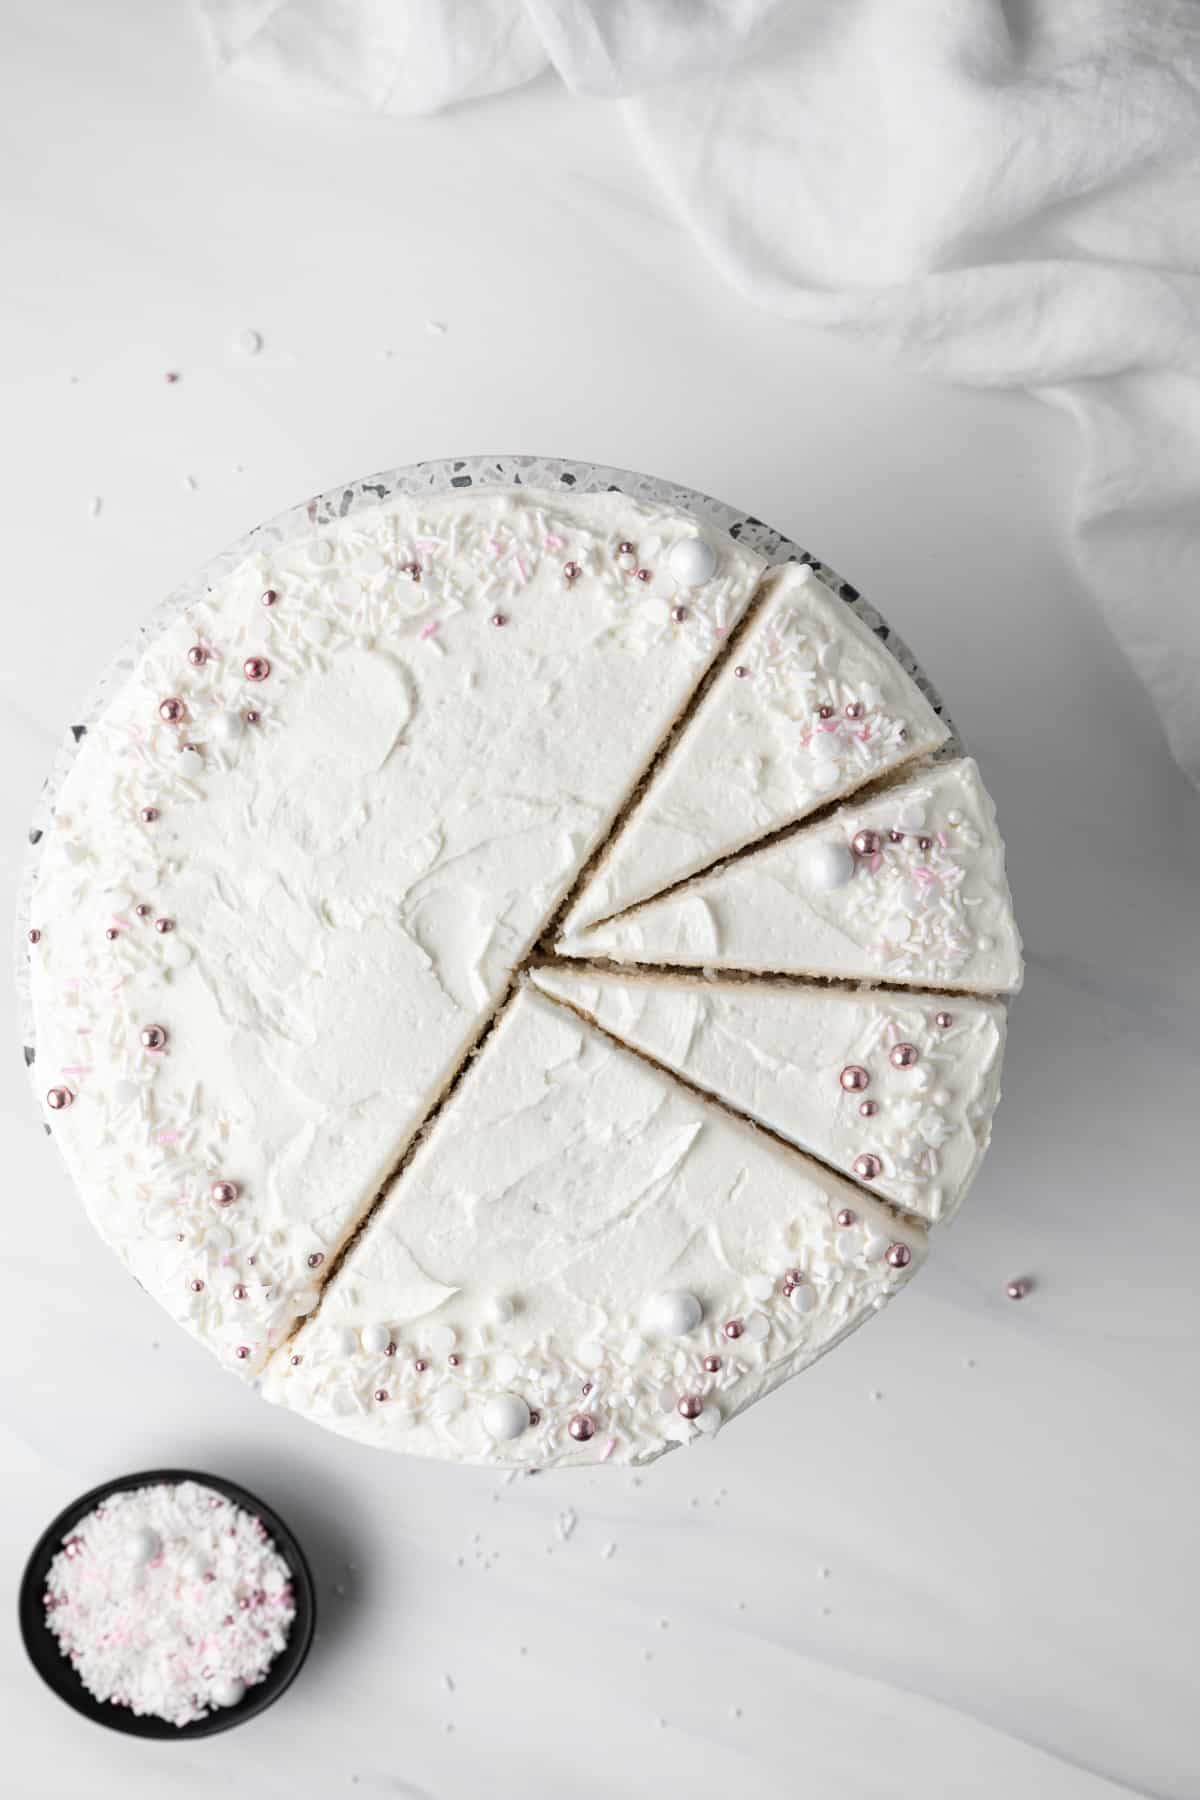 Frosted white cake, half cut into slices